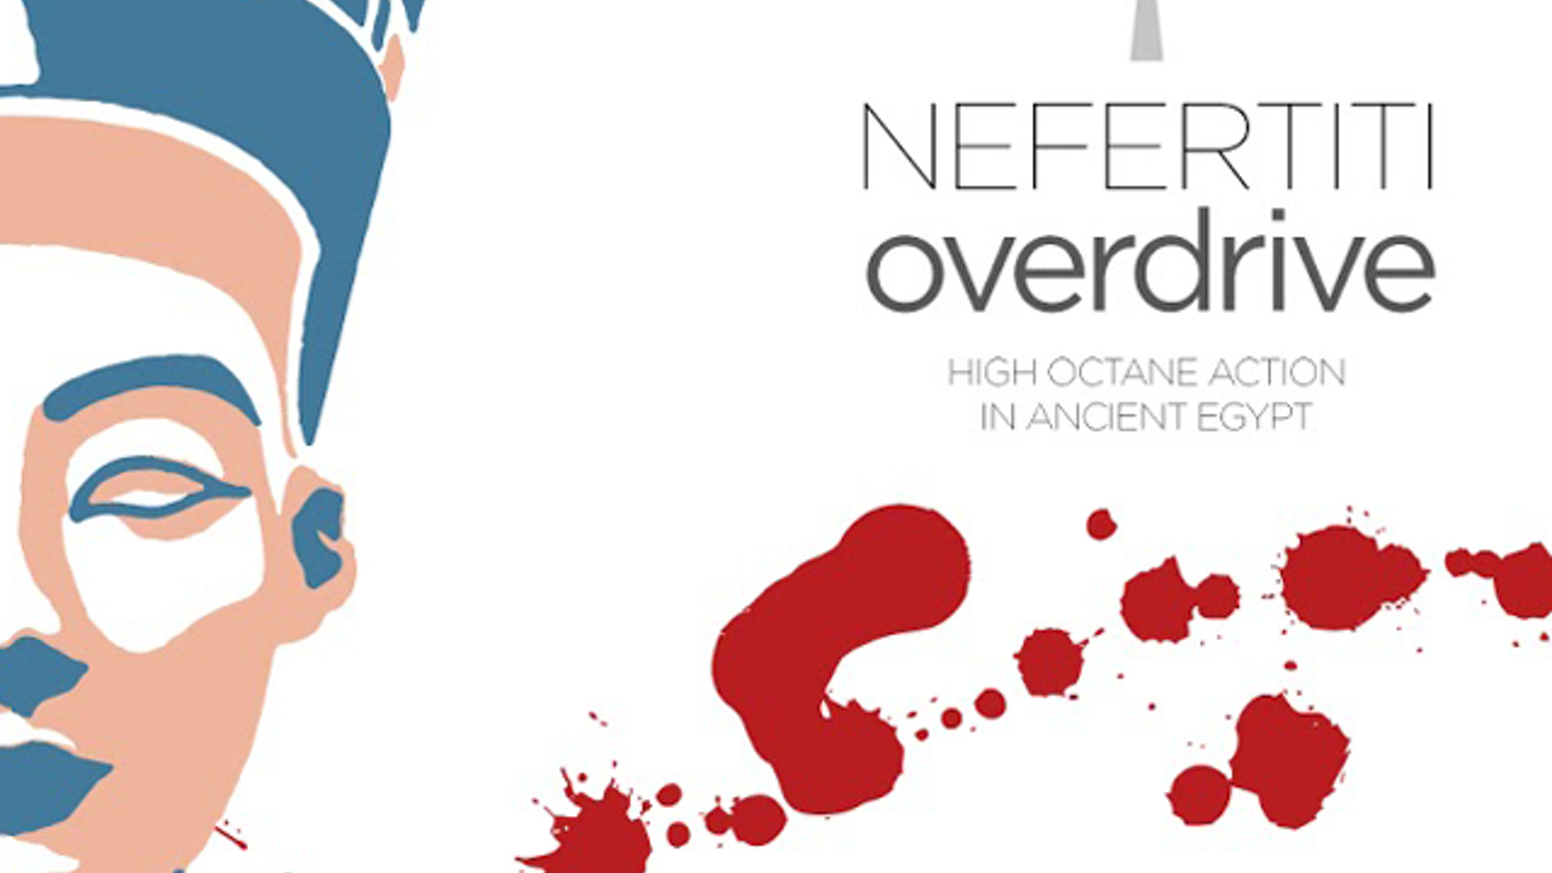 A tabletop, pen & paper RPG, Nefertiti Overdrive is mash-up of legendary Ancient Egypt and high octane, cinematic action.